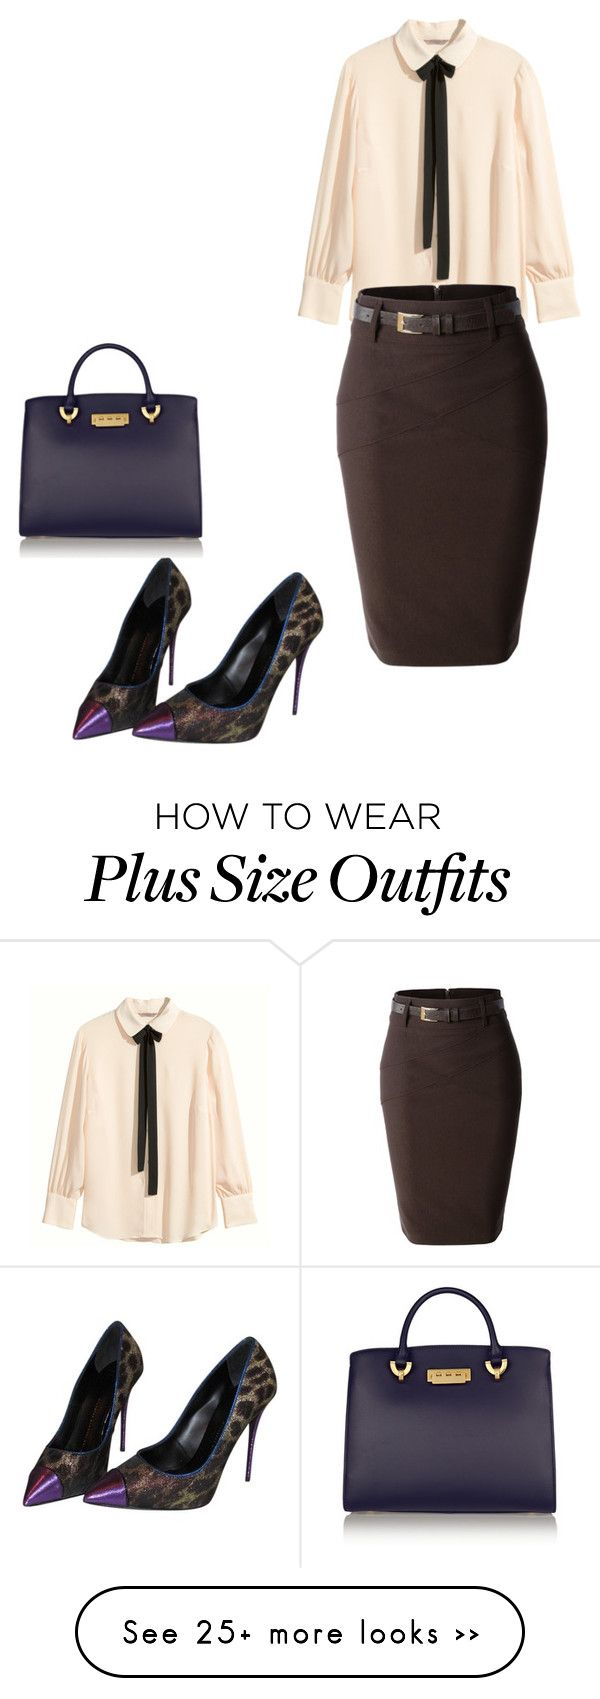 """Plus size workwear"" by chuckle78 on Polyvore featuring H&M, LE3NO, Giuseppe Zanotti and ZAC Zac Posen"